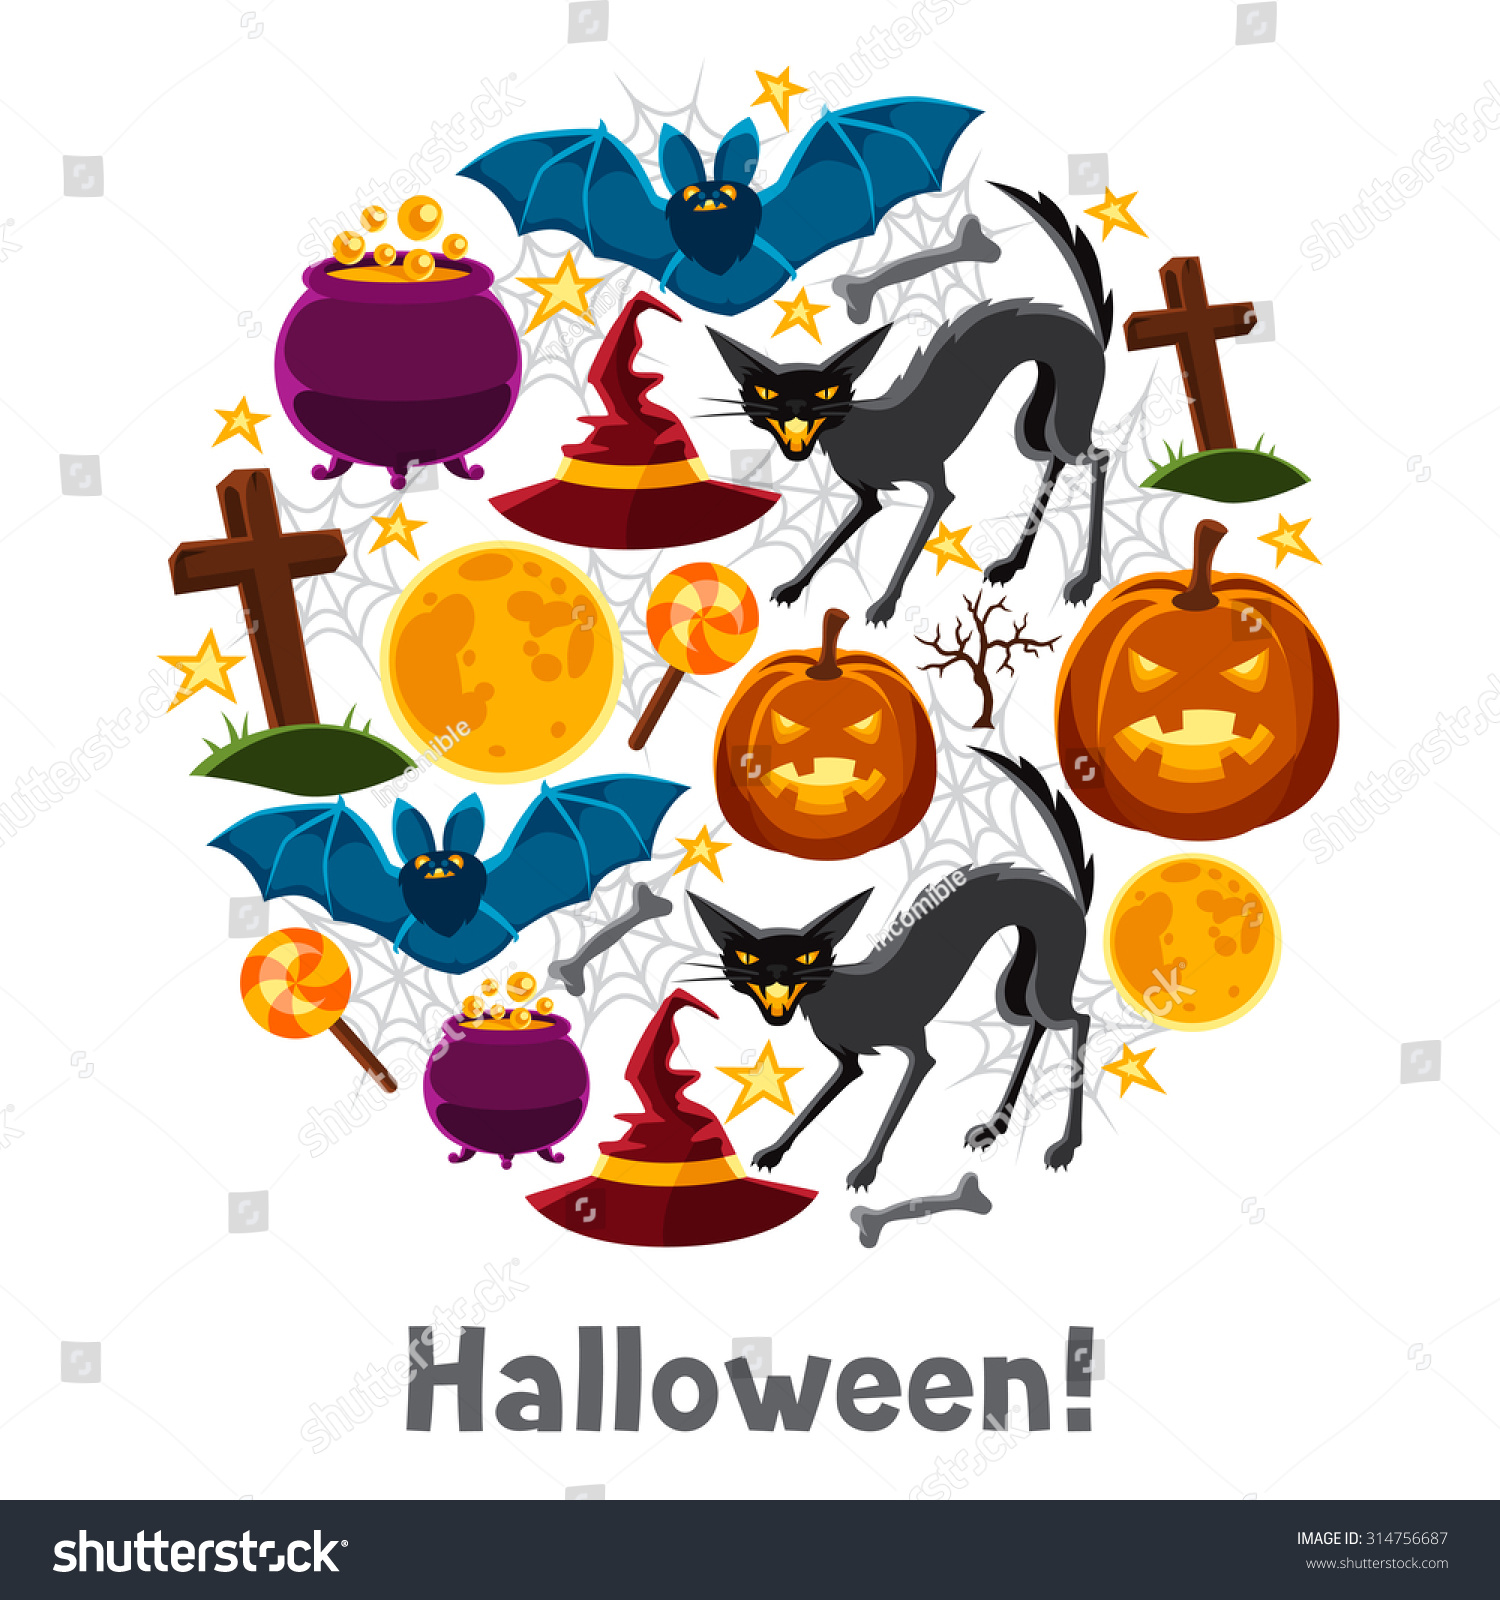 Happy halloween greeting card characters objects stock vector happy halloween greeting card with characters and objects kristyandbryce Gallery